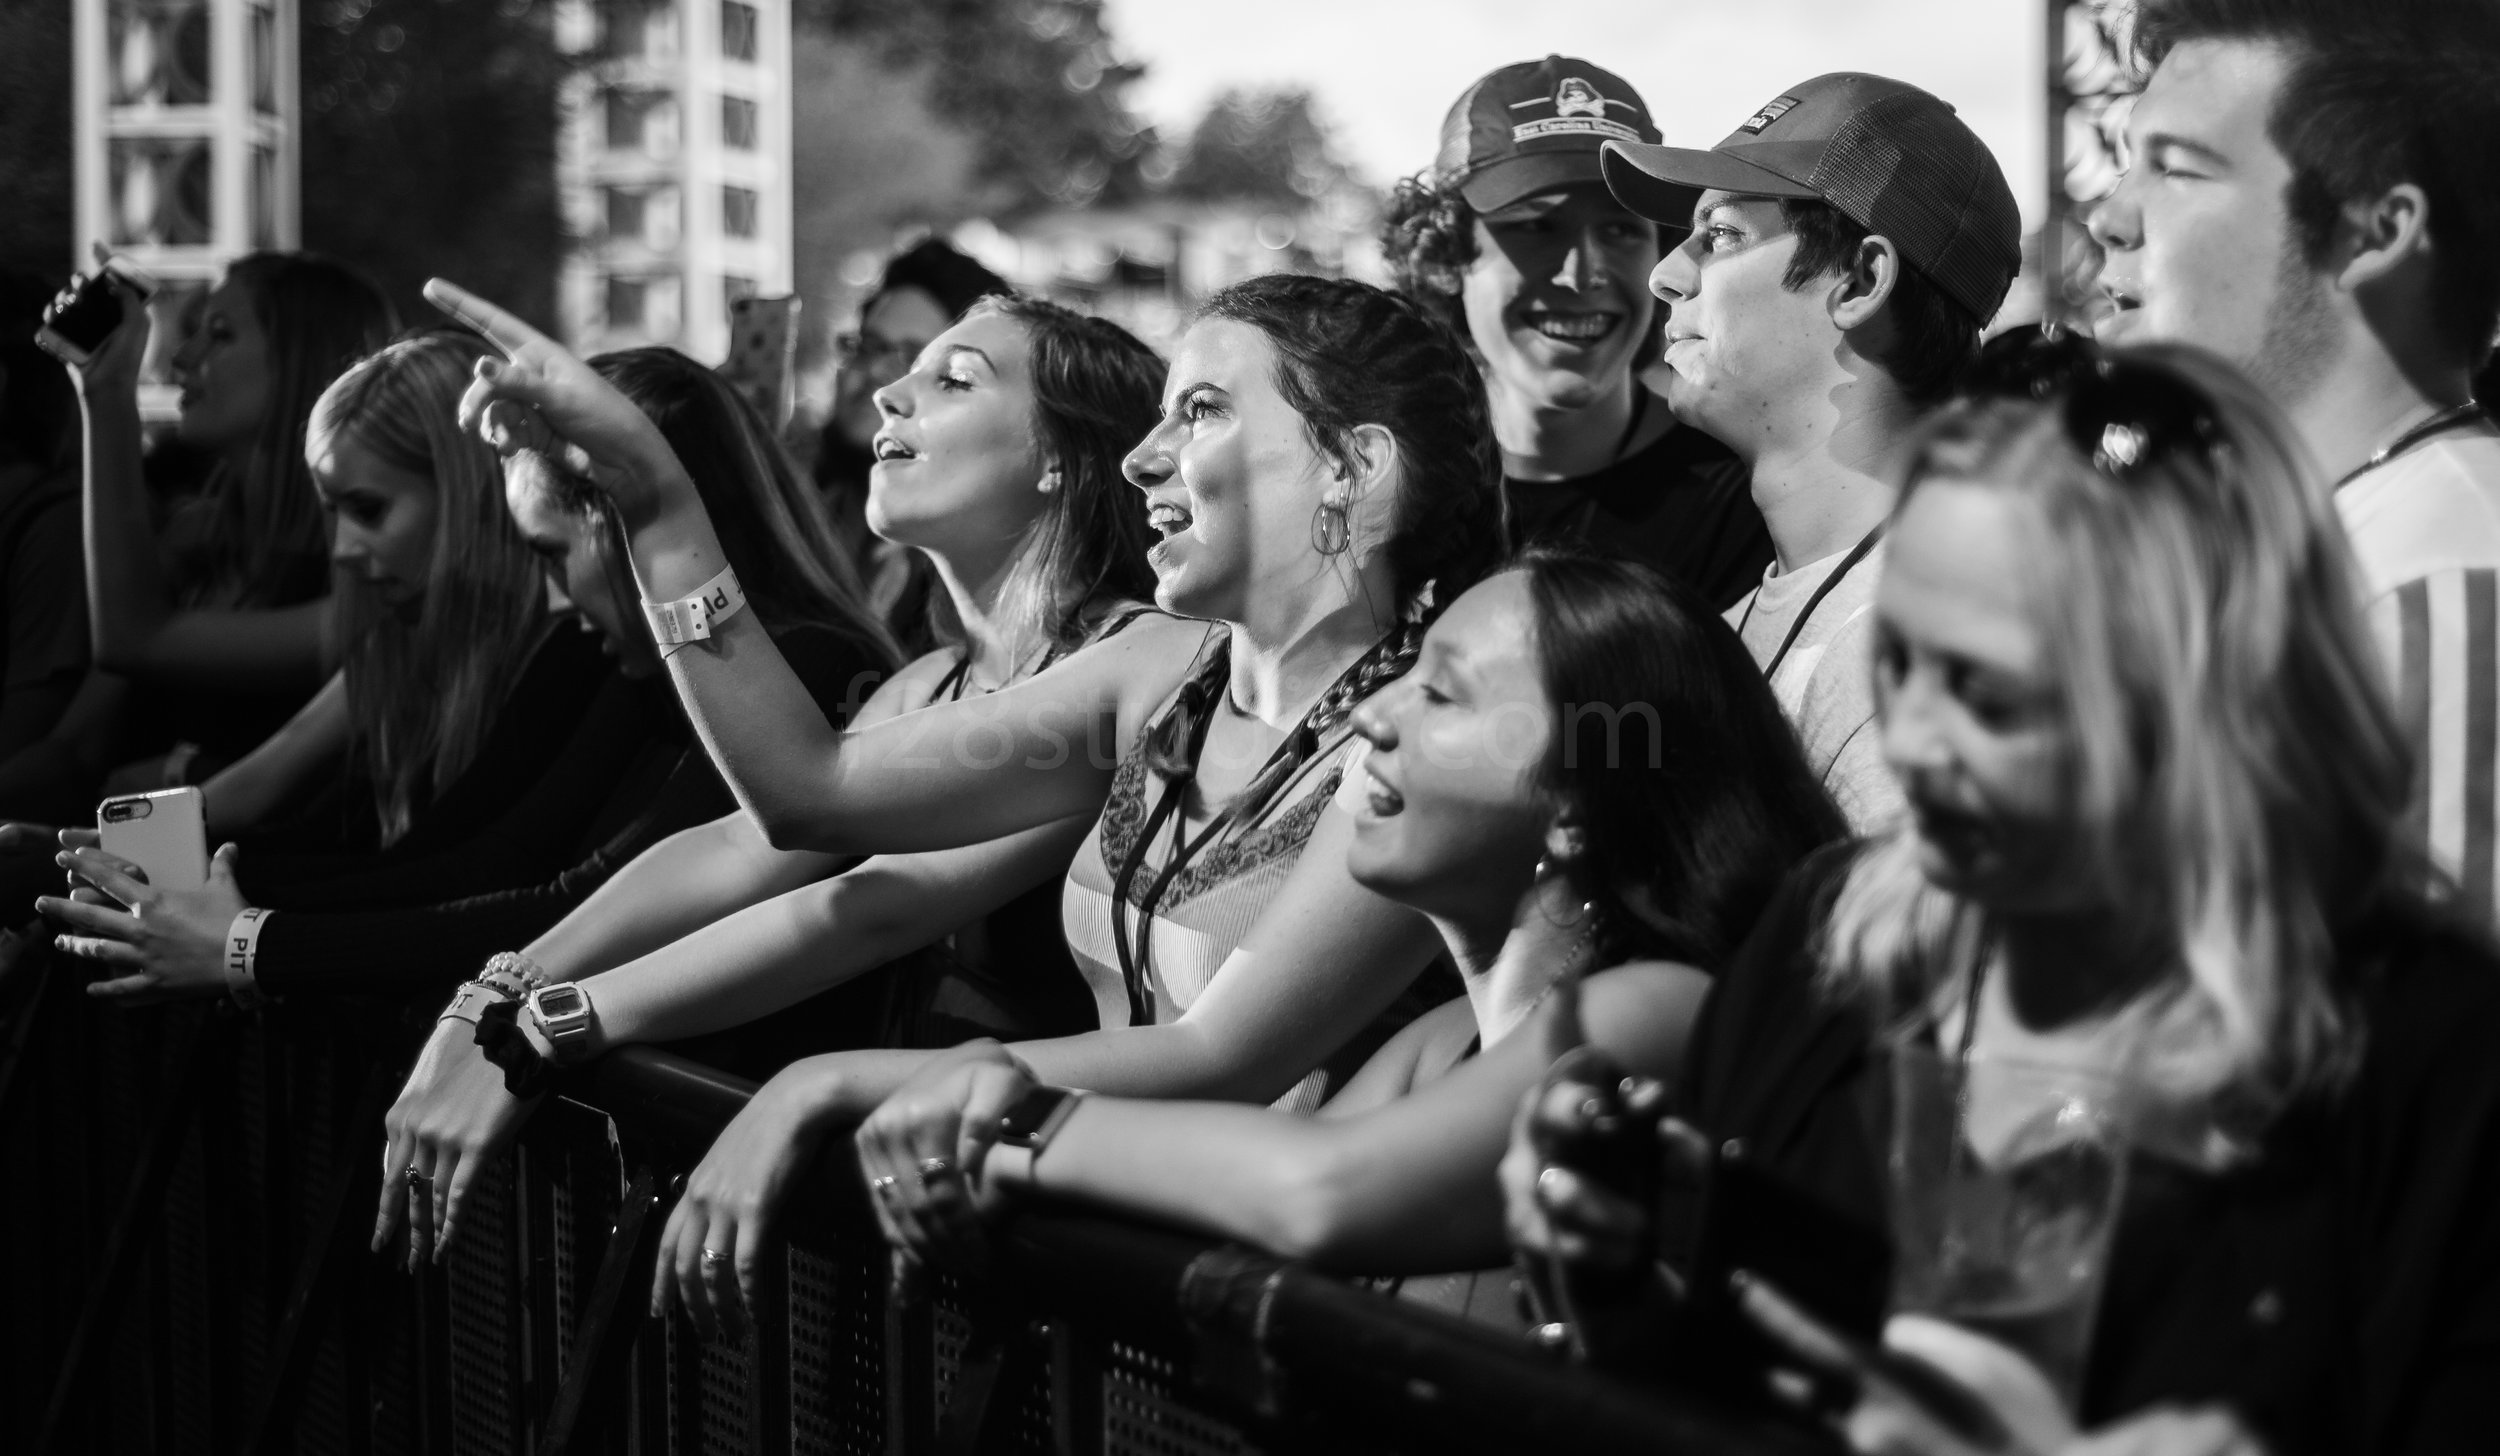 Fans waiting as Post Malone was about to hit the stage.